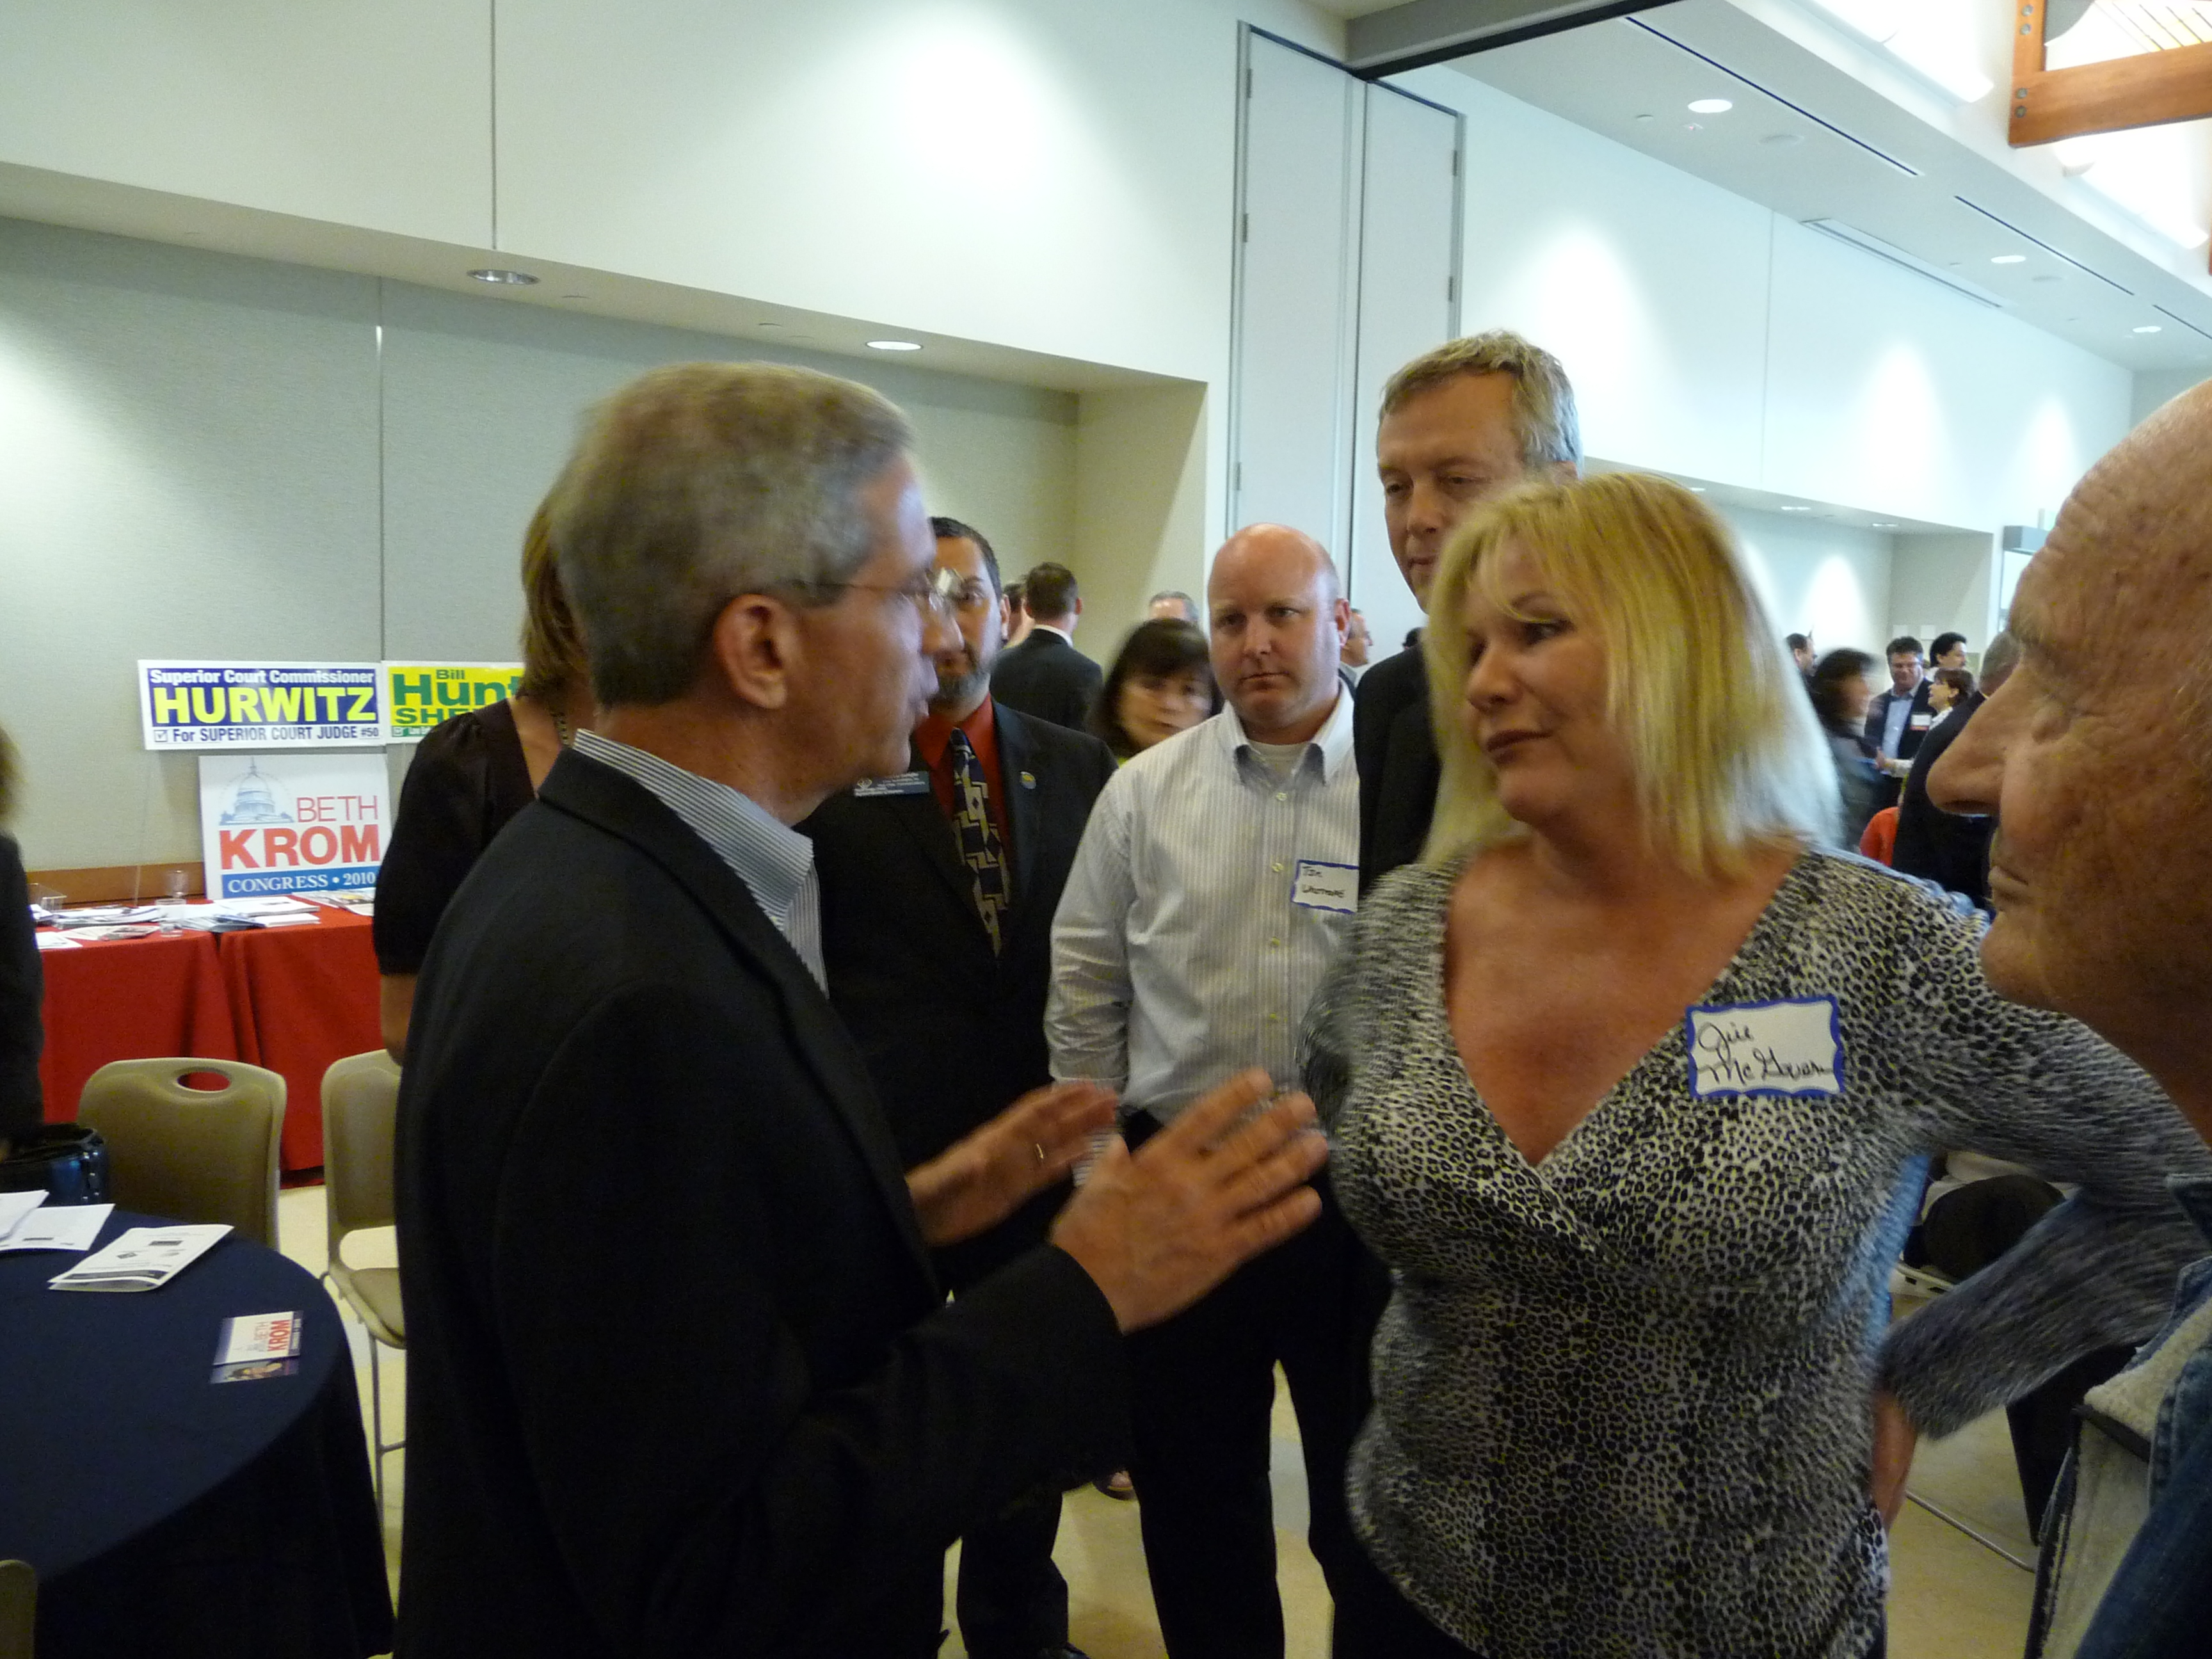 The South Orange County Chamber of Commerce hosted a two hour Meet the Candidates Reception last night (May 6th) in the Norman P. Murray Community and Senior Center in Mission […]